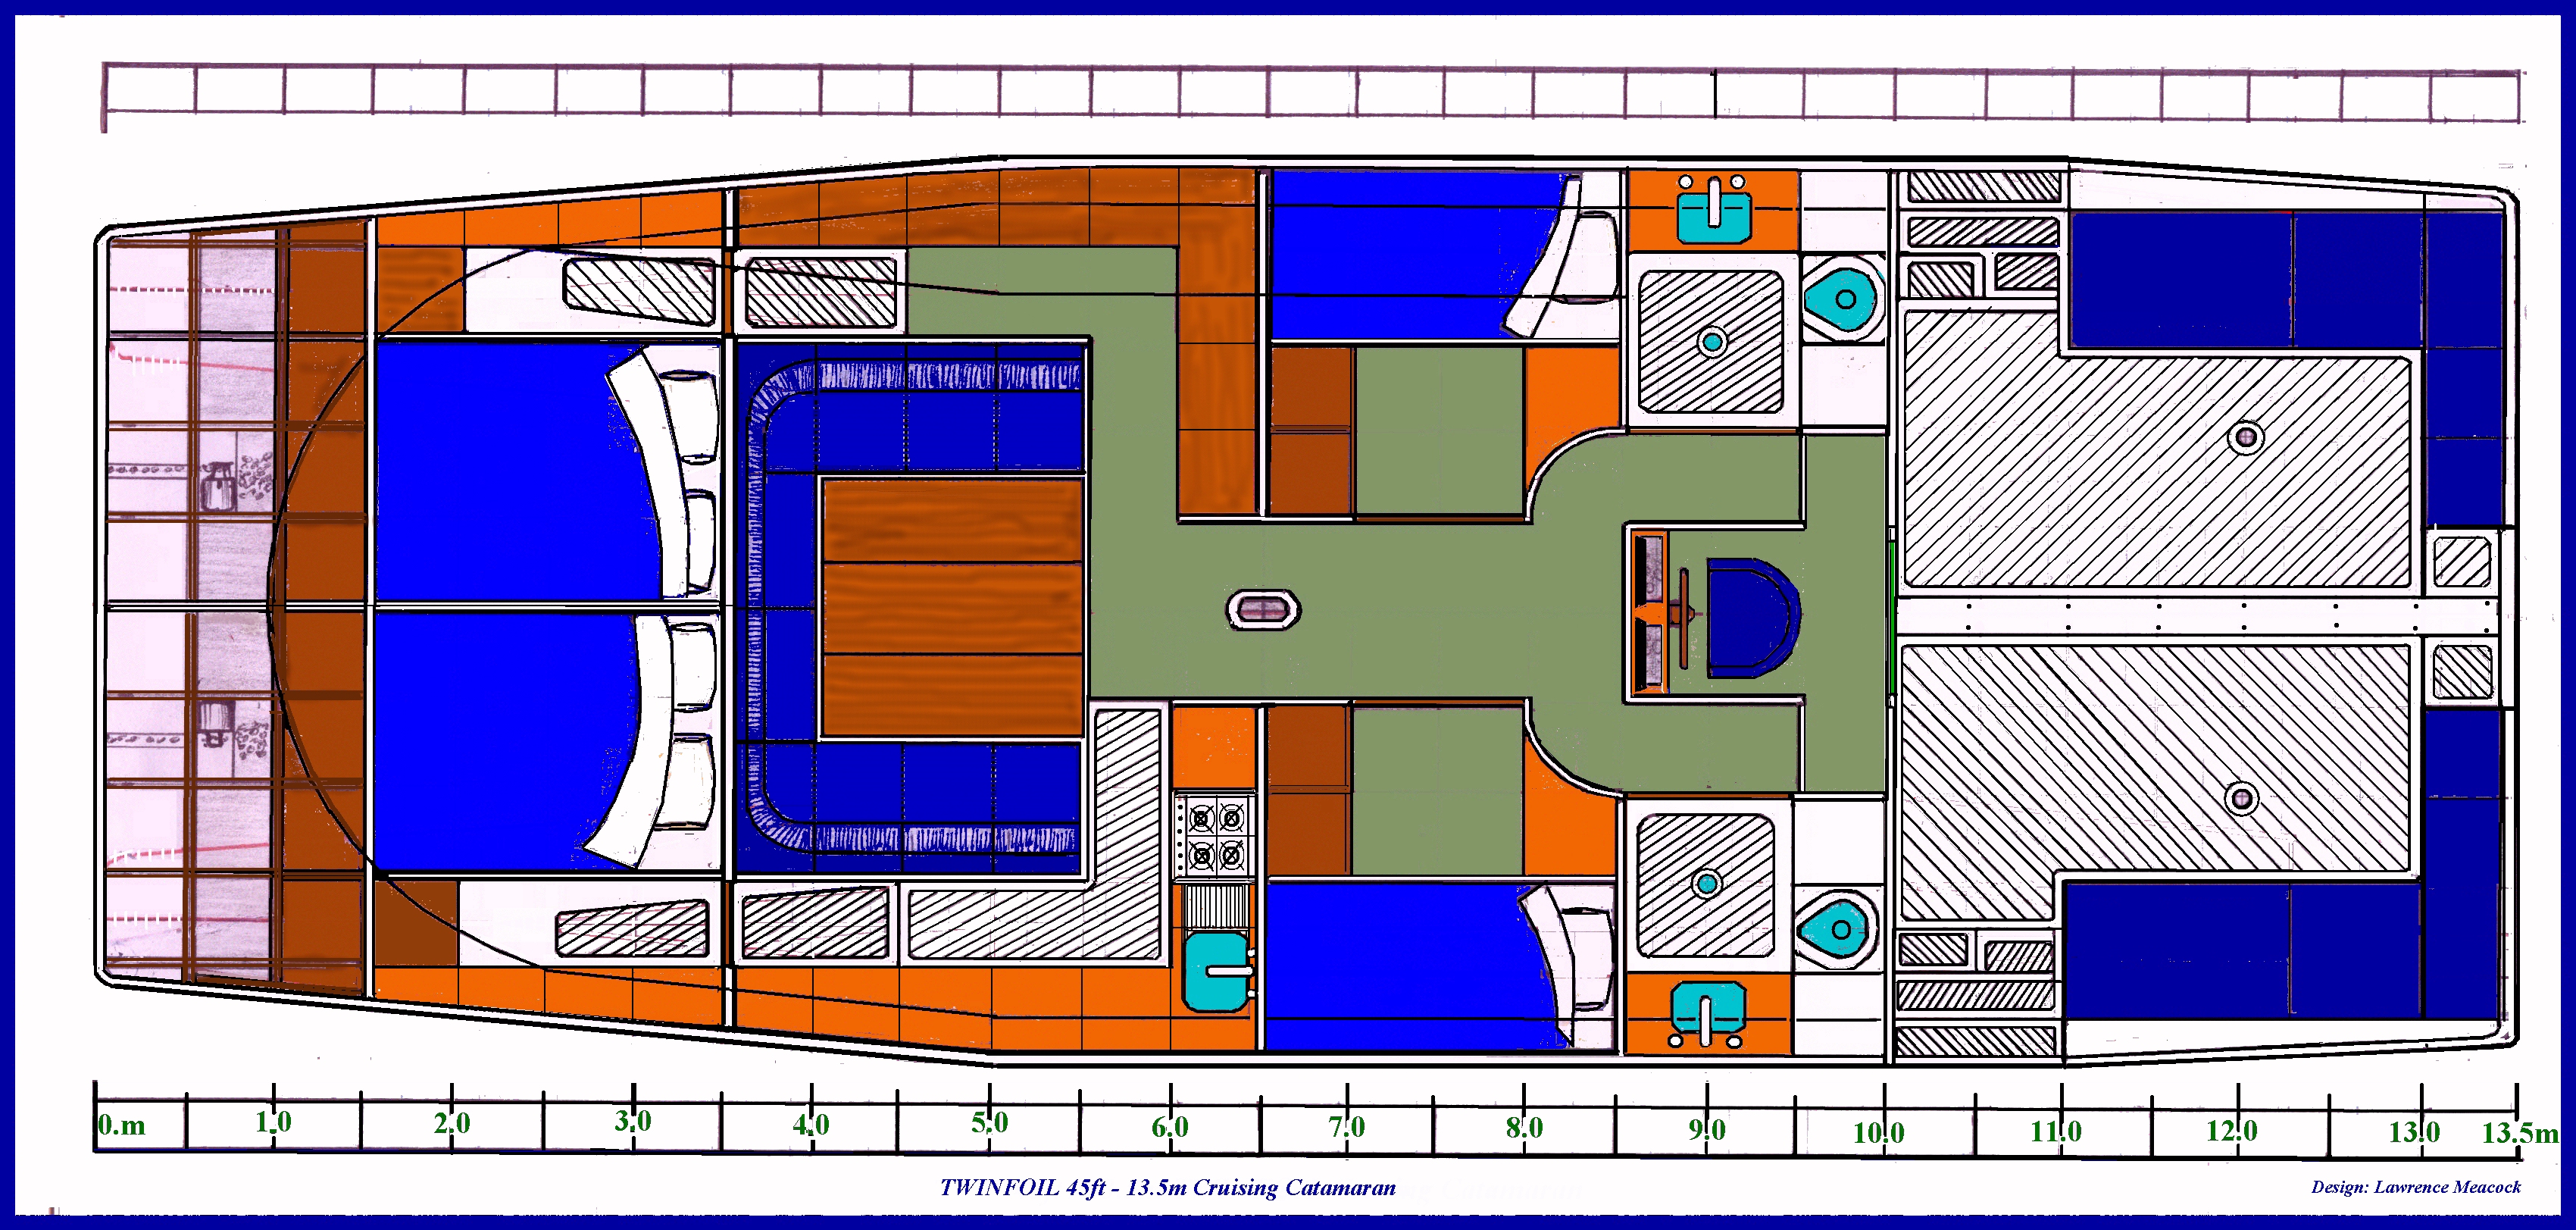 45ft TWINFOIL Cruising Catamaran interior